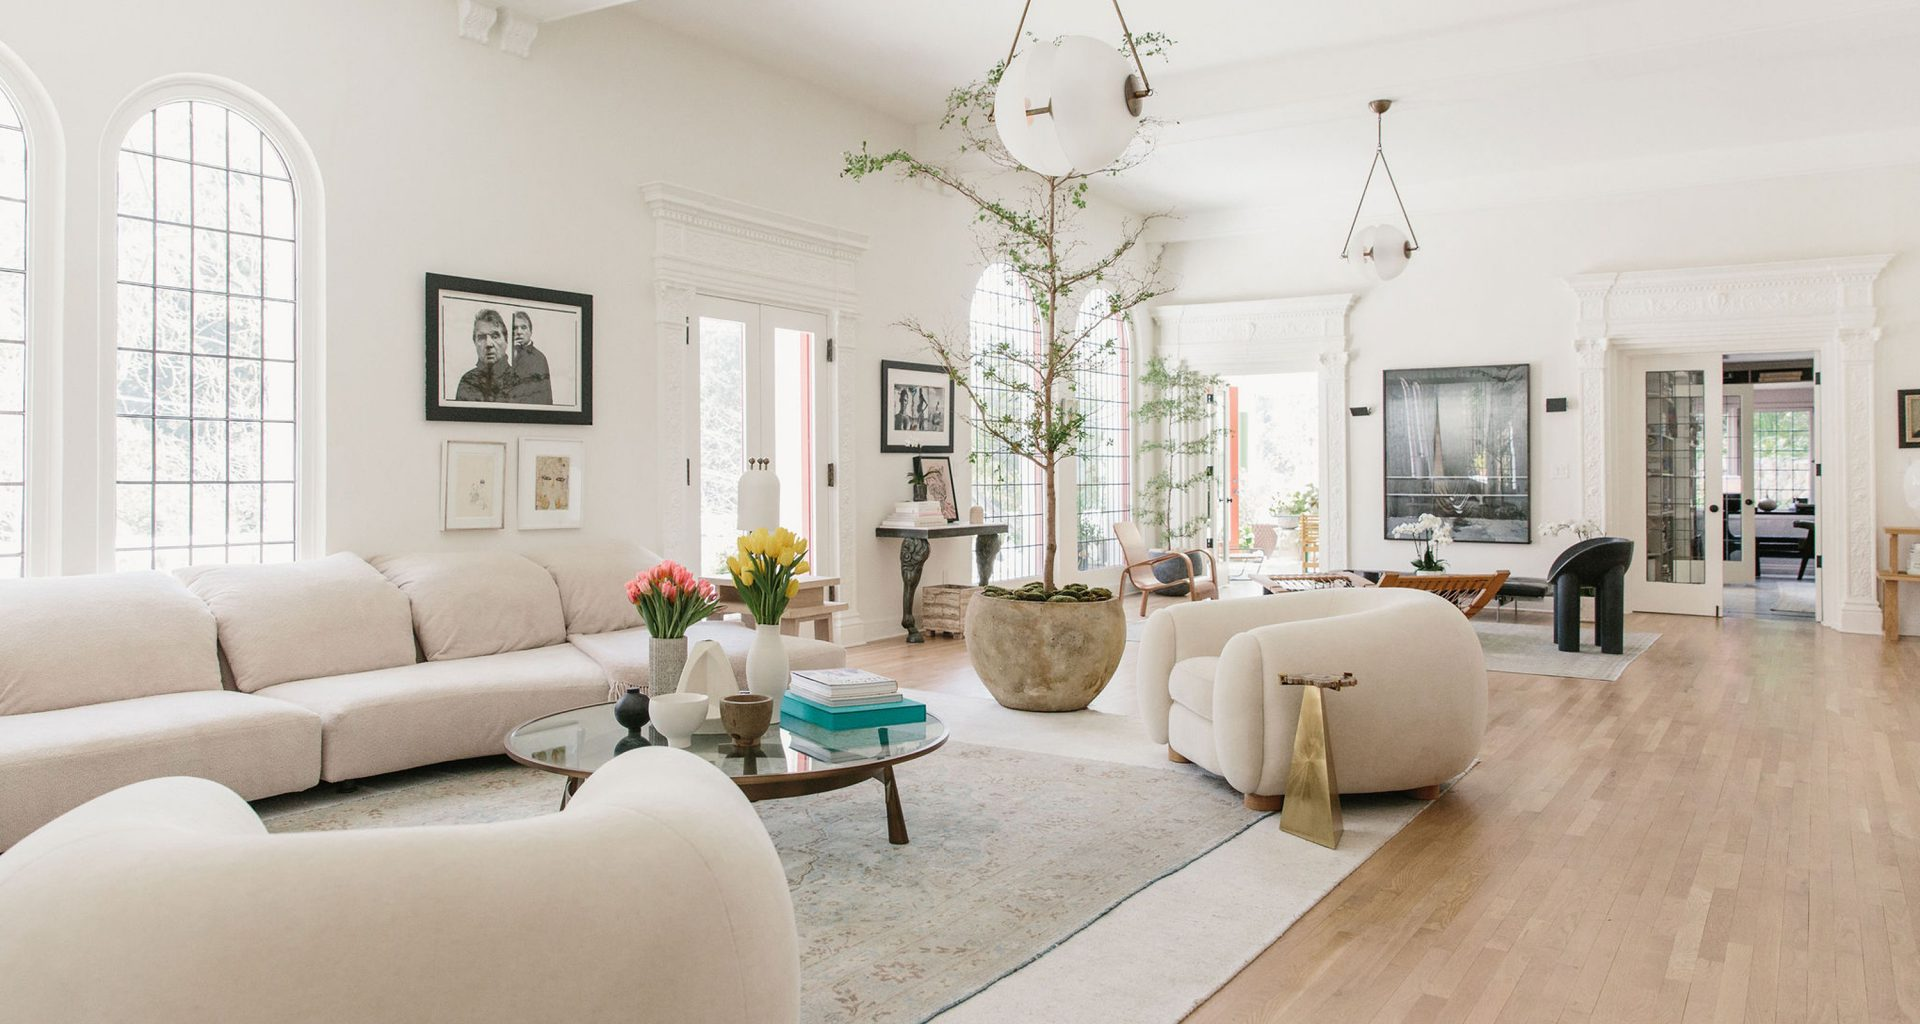 How to Decorate Your Living Room Like These 3 Pros